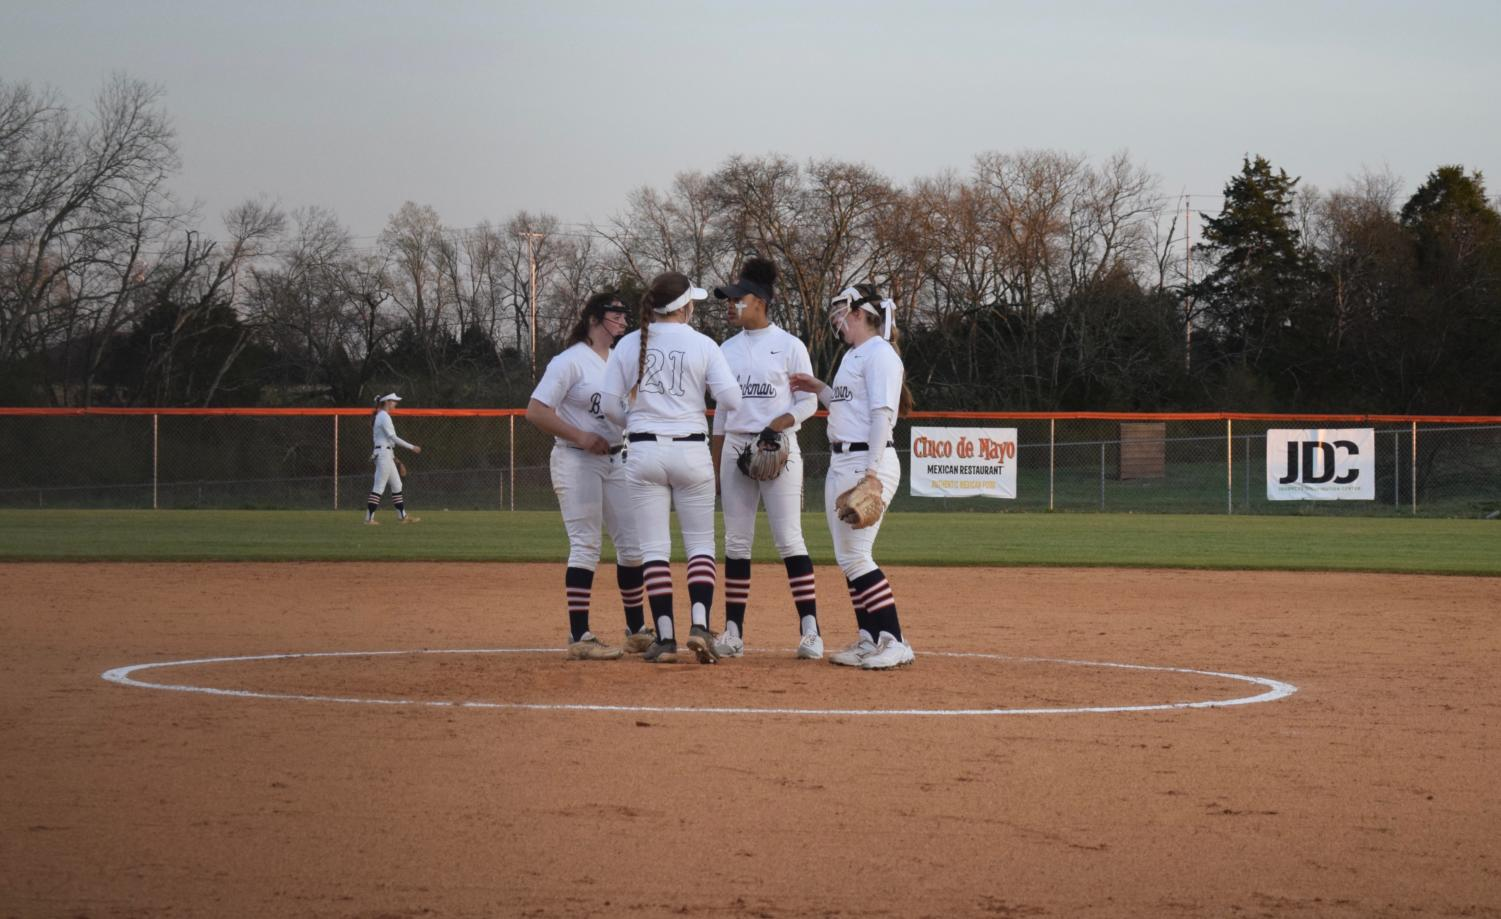 Lady+Blaze+infield+hyping+up+their+pitcher.